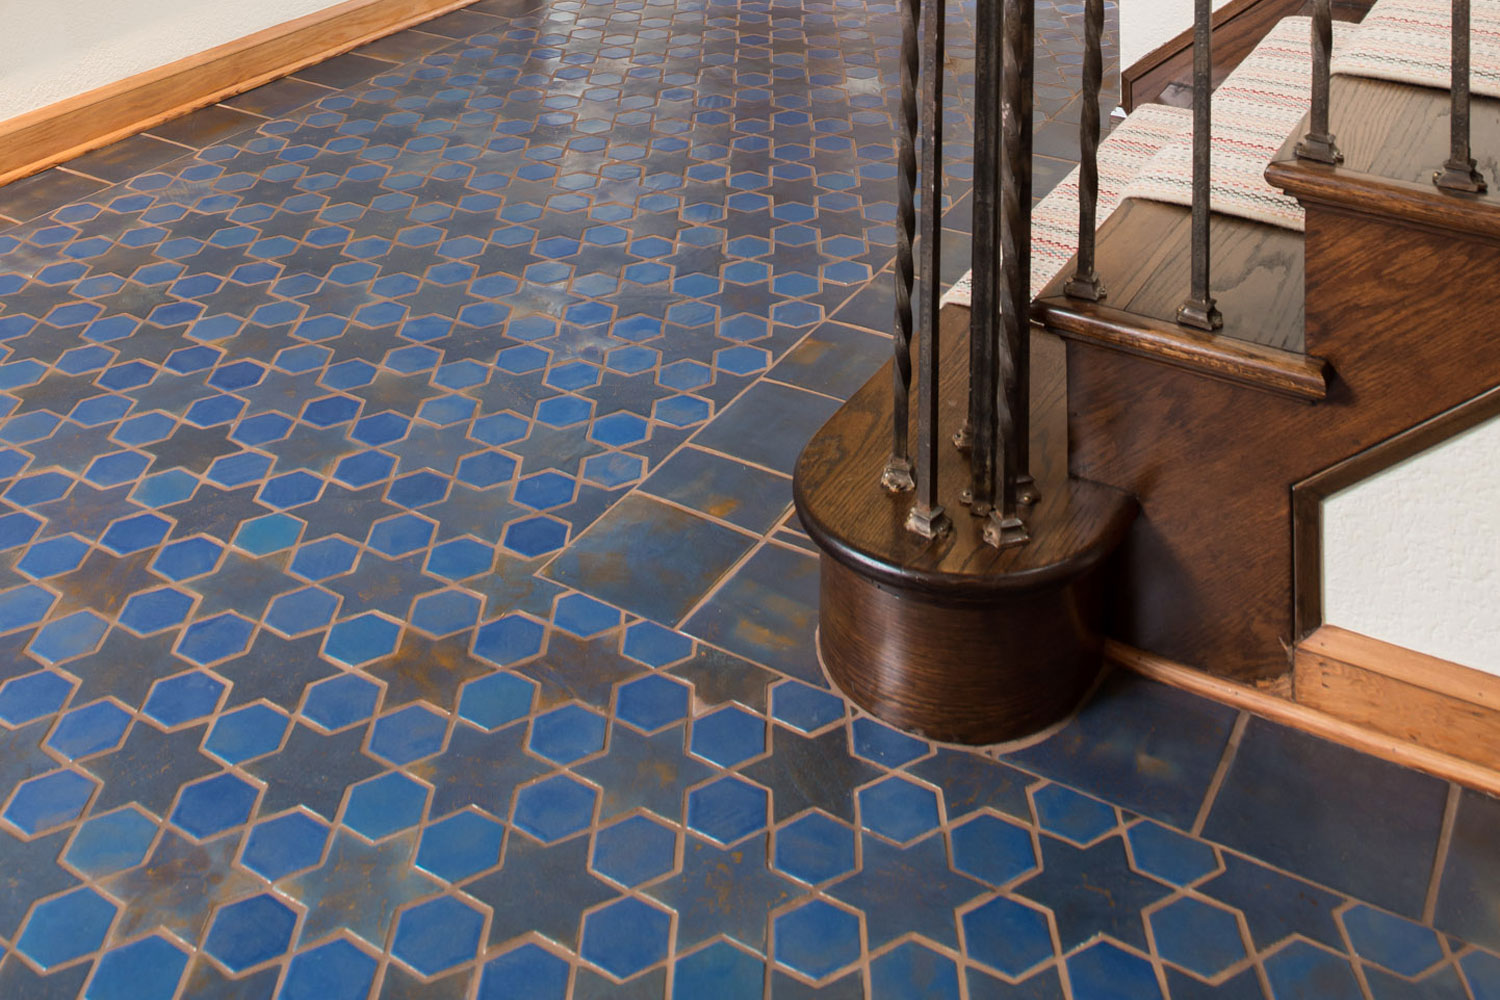 Antique Ceramic Mosaic Tiles For Kitchen Living Roof and Bathroom